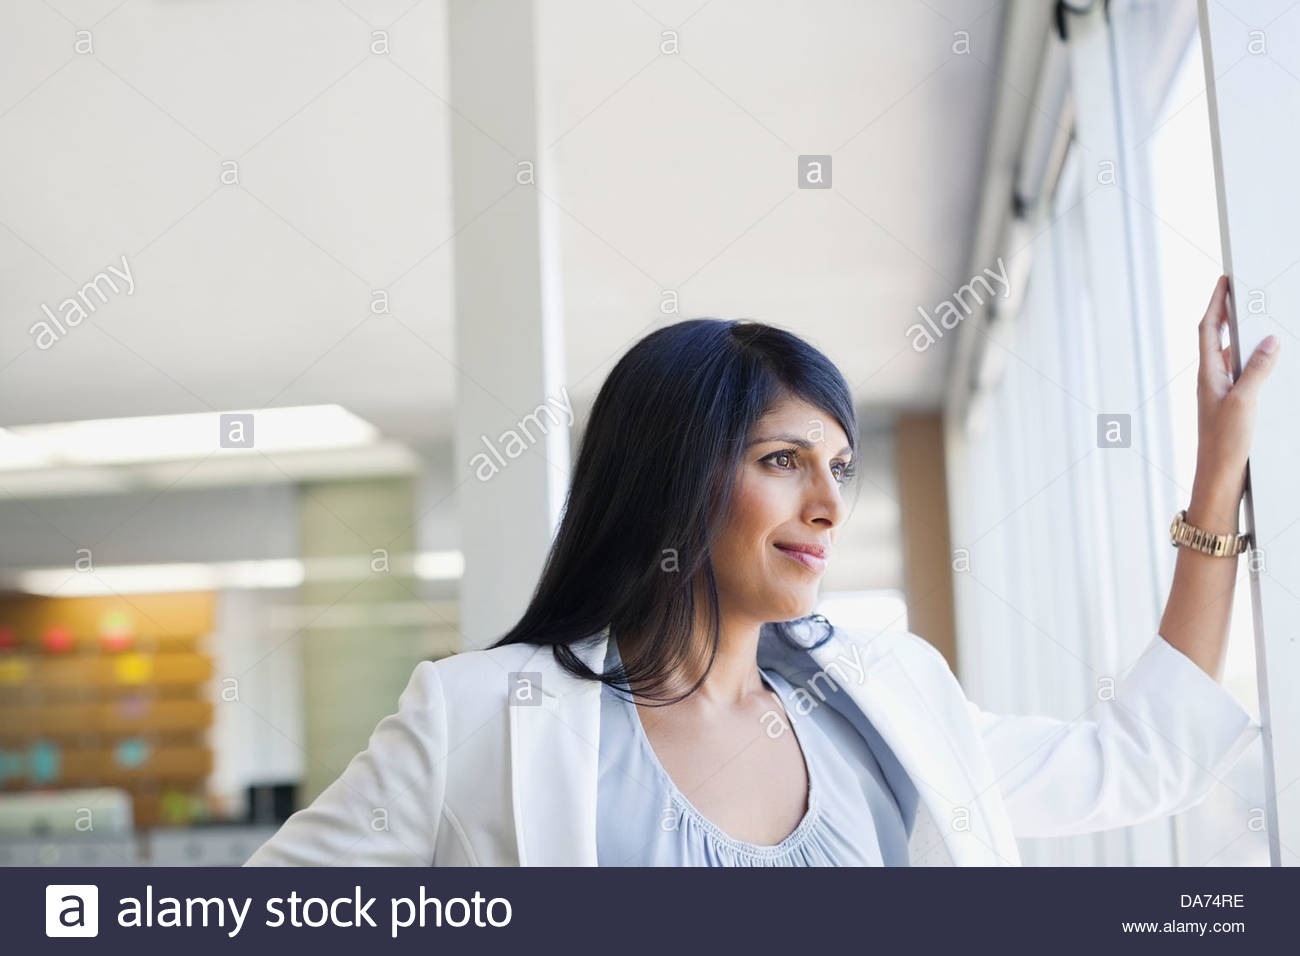 Businesswoman looking out window in office - Stock Image